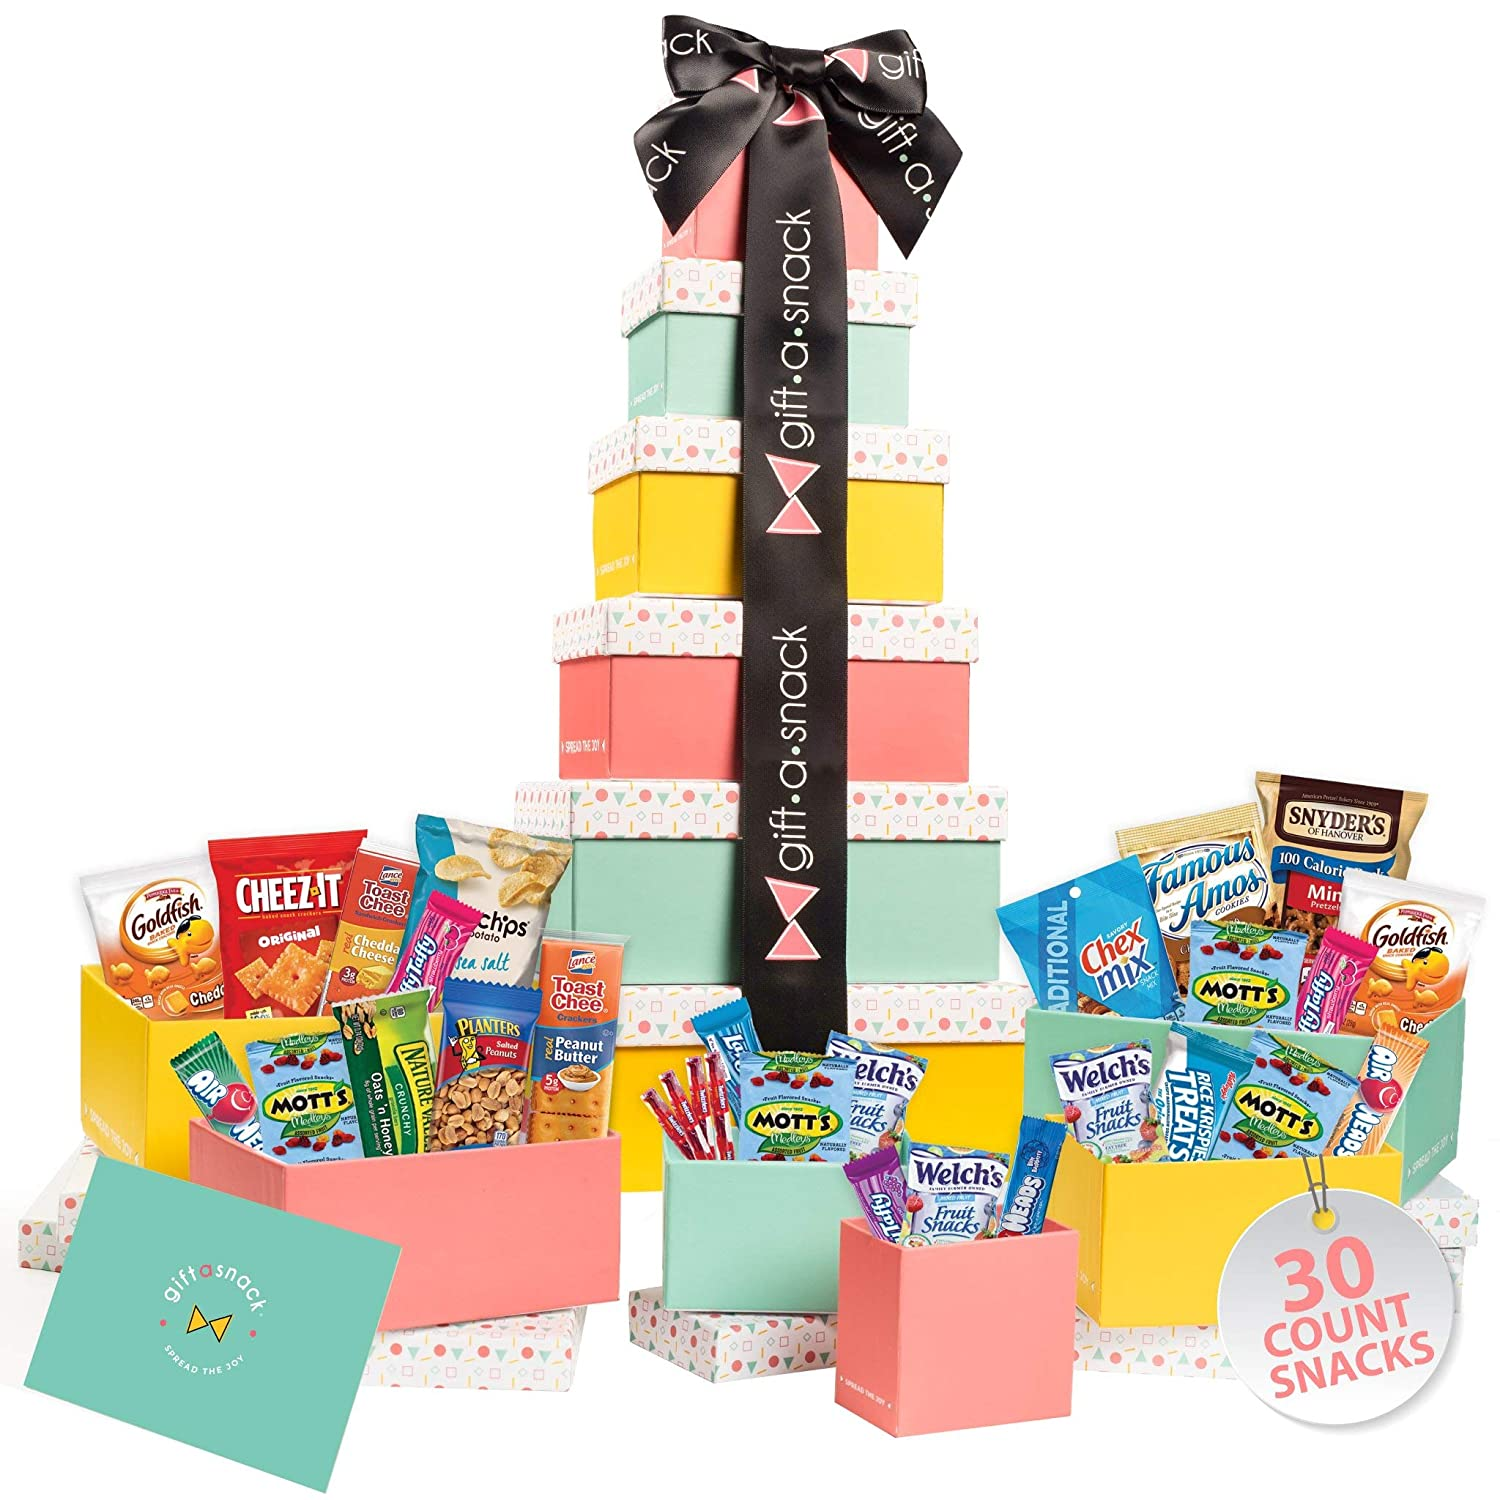 Tower Snack Box Variety Pack (30 Count) Candy Gift Basket - College Student Care Package, Prime Food Arrangement Chips, Cookies, Bars - Ultimate Birthday Treat for Women, Men, Adults, Teens, Kids